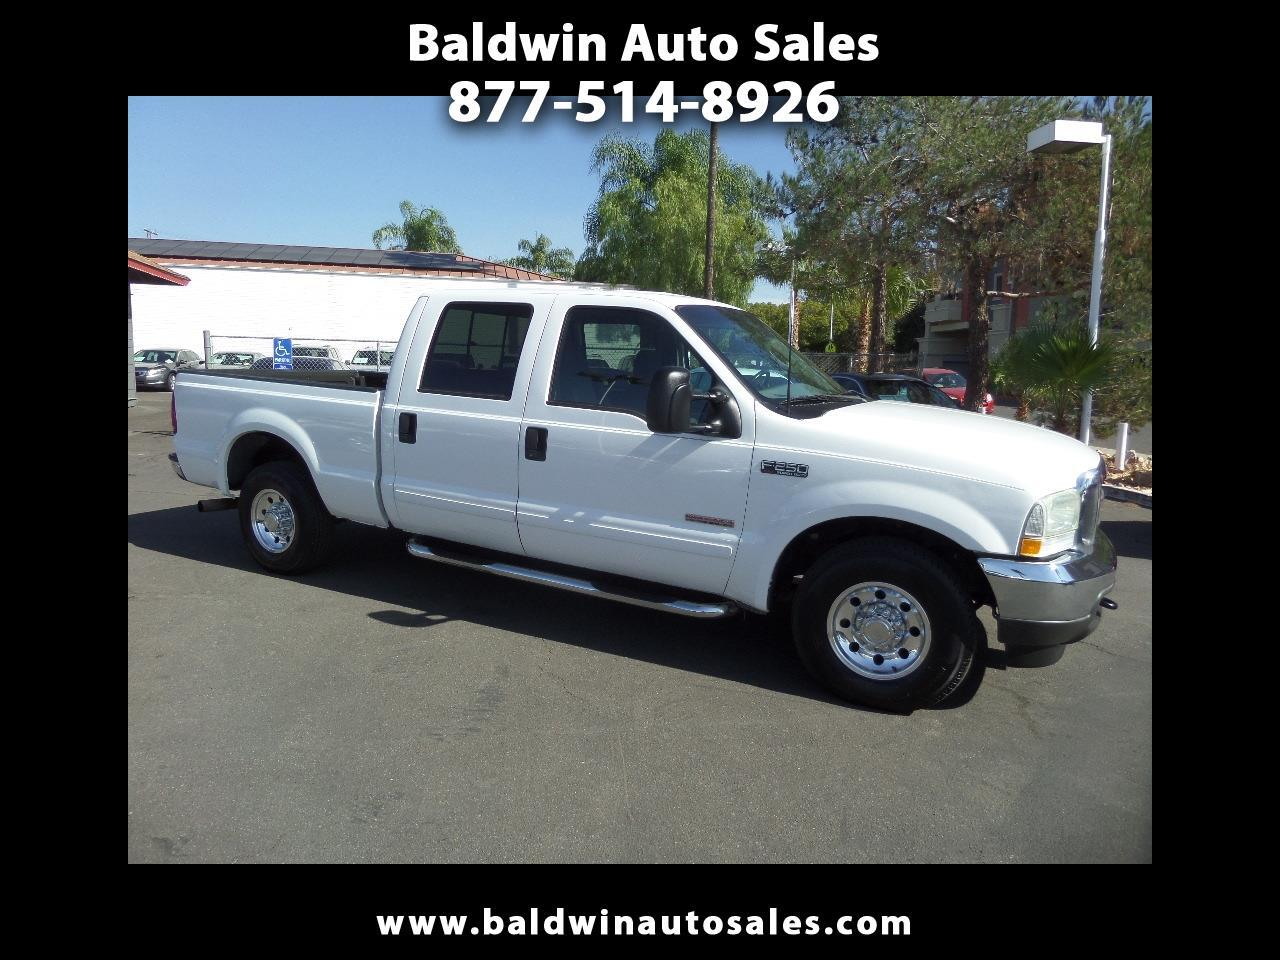 2003 Ford Super Duty F-250 Crew Cab 156